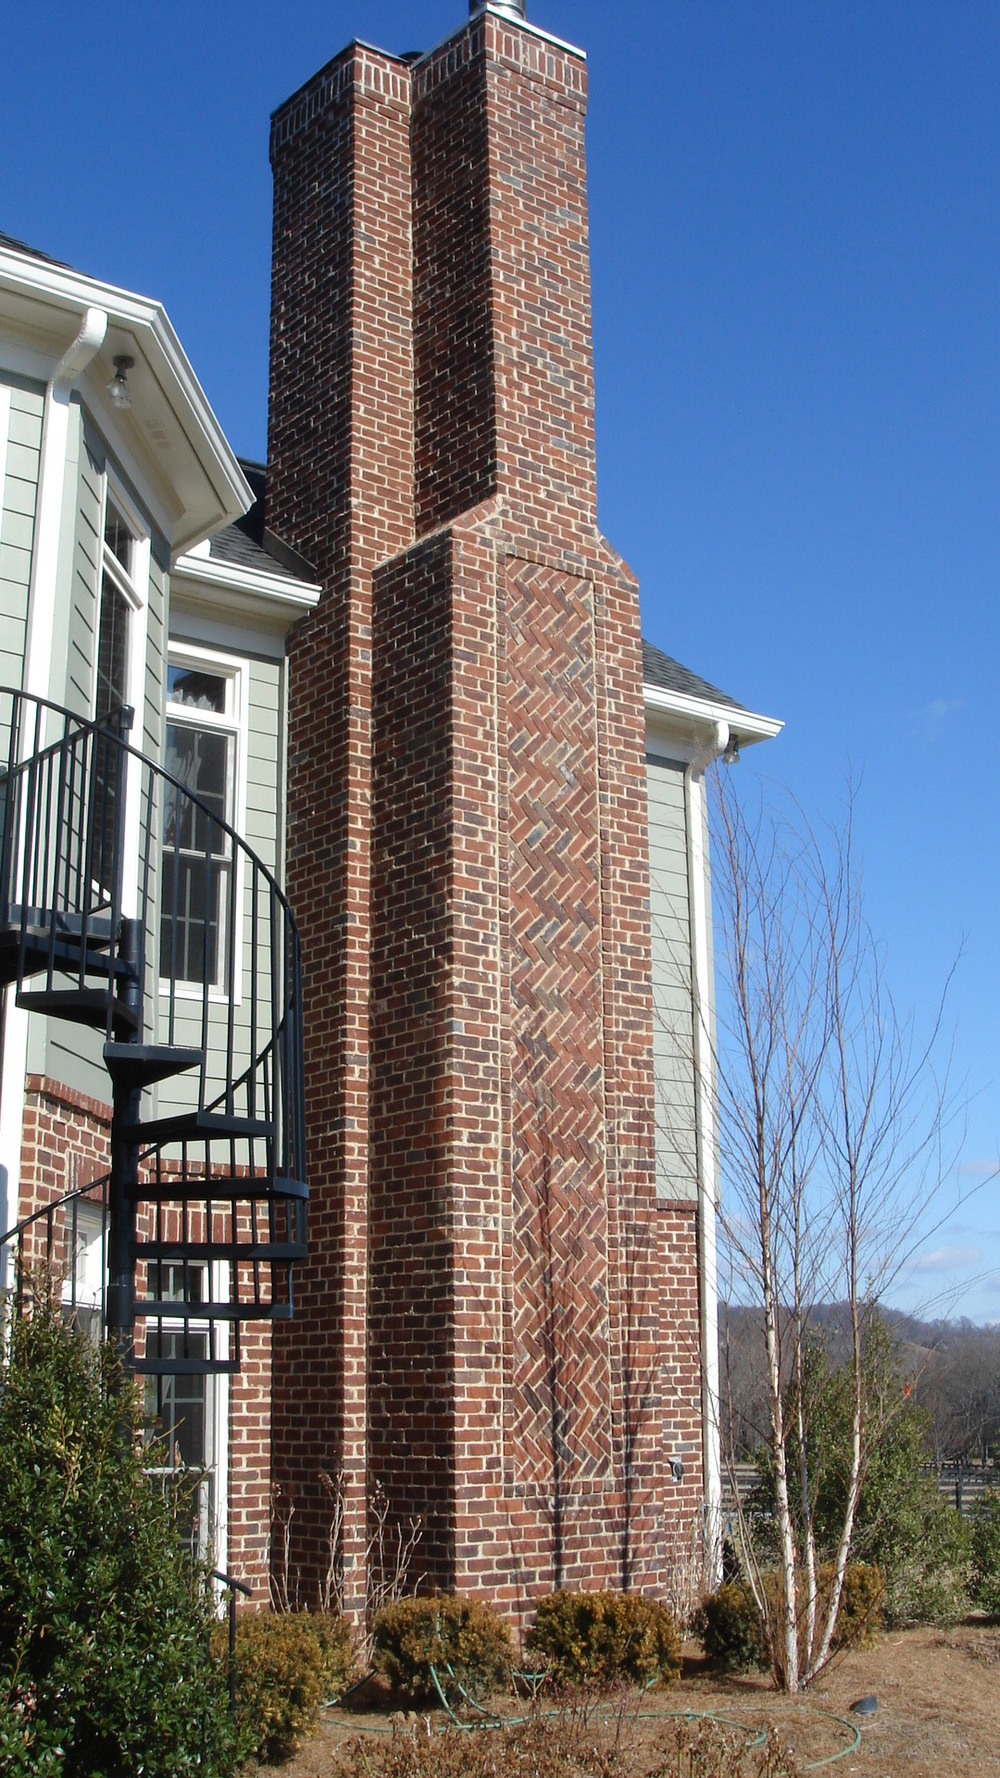 23 Shearer chimney.JPG